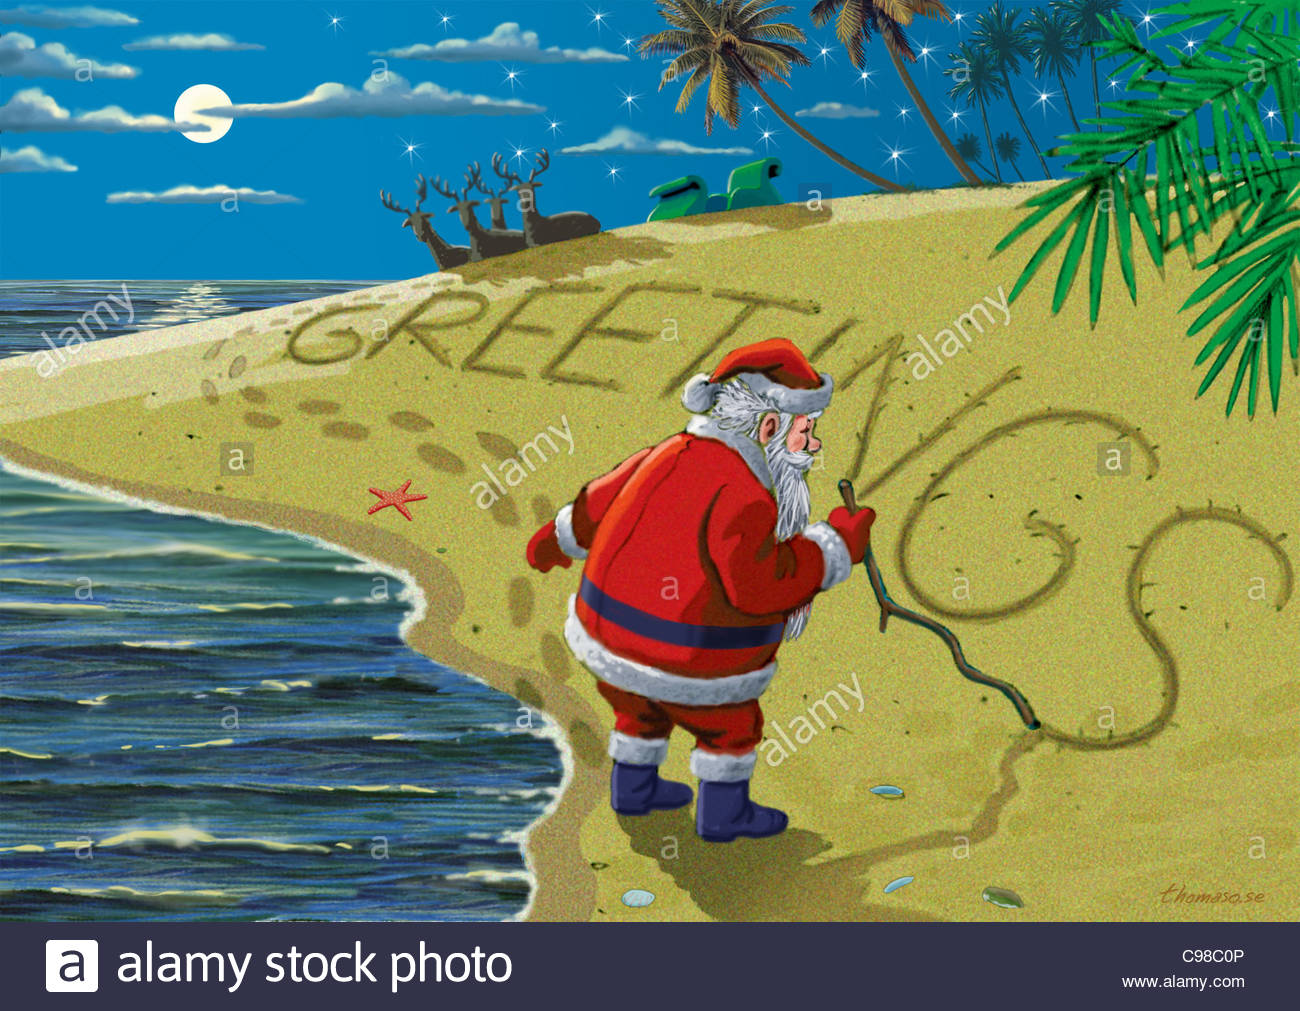 Weihnachtswnsche On Beach Christmas Card Christmas Cards Stock Photo